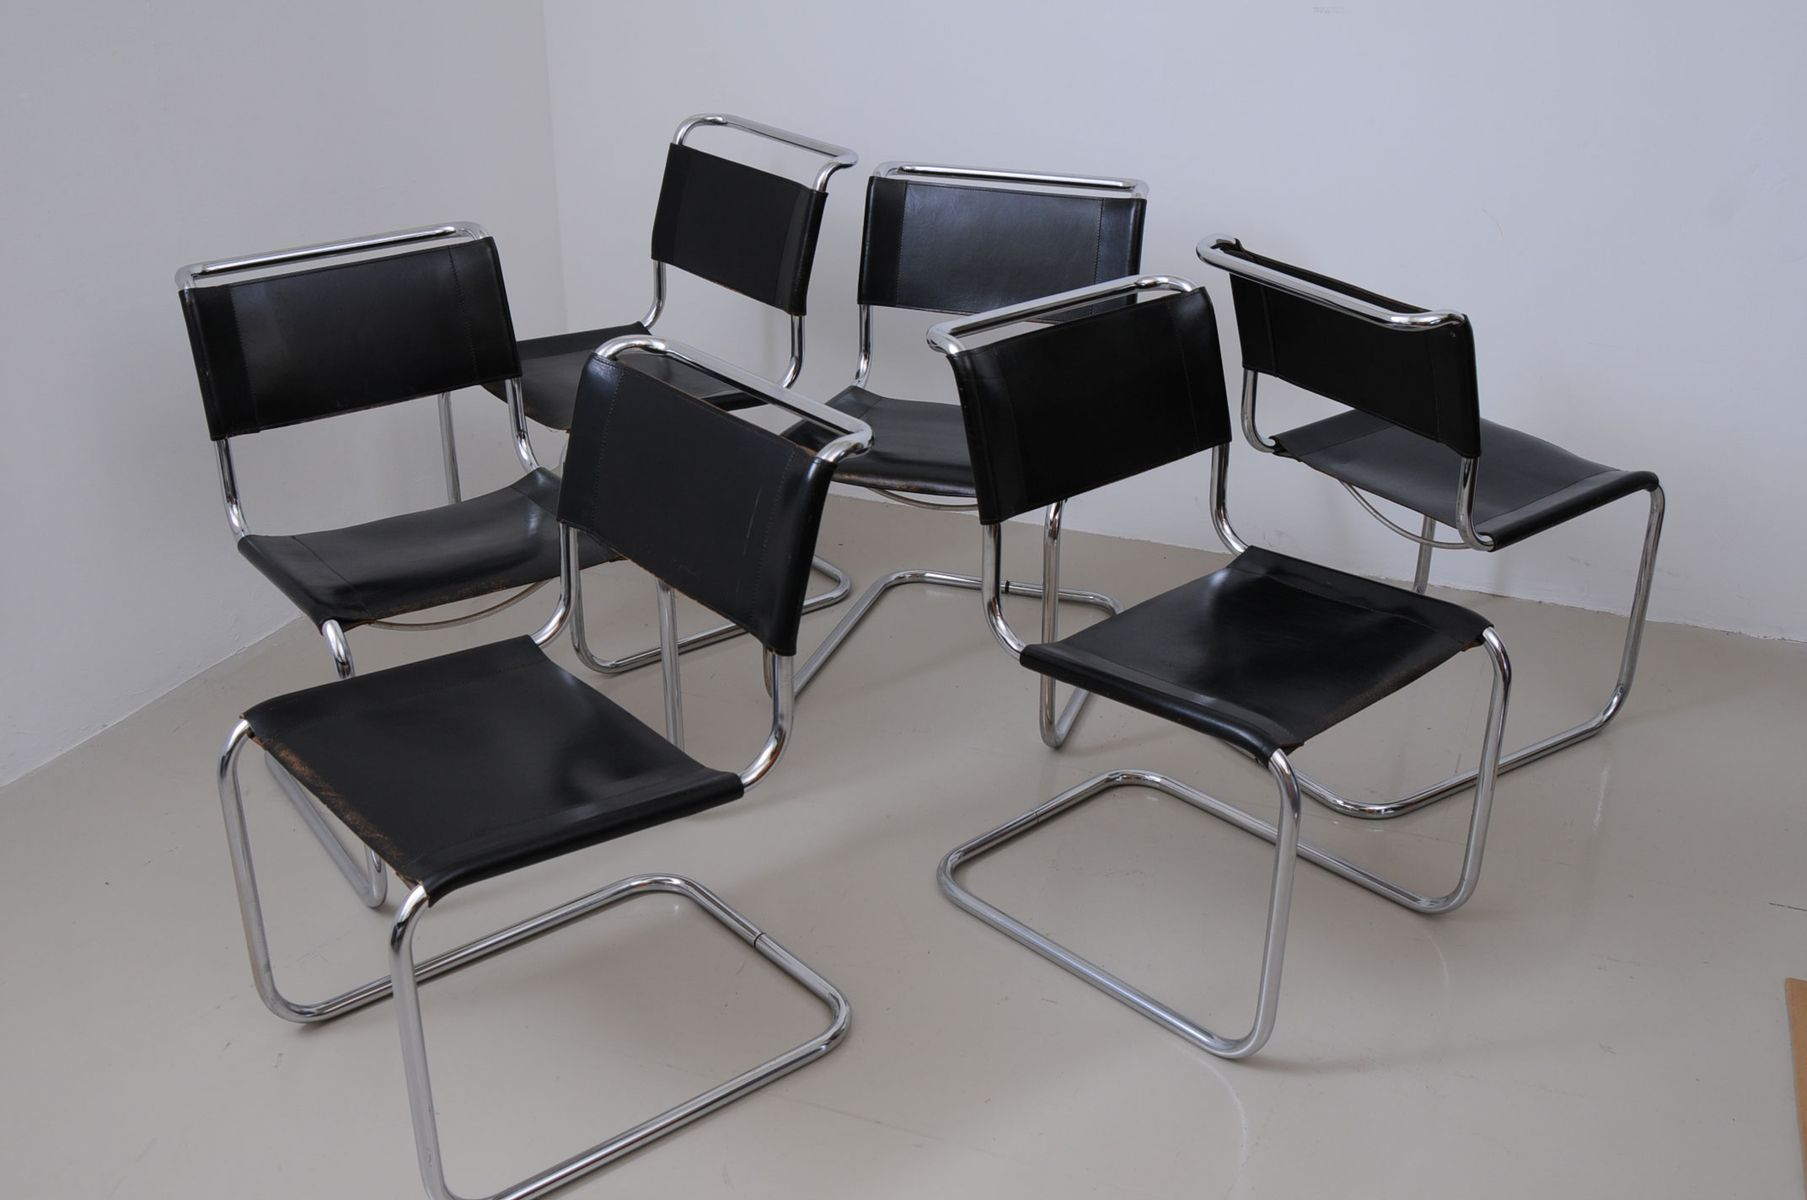 vintage s33 dining chairs by mart stam for thonet set of 6 for sale at pamono. Black Bedroom Furniture Sets. Home Design Ideas